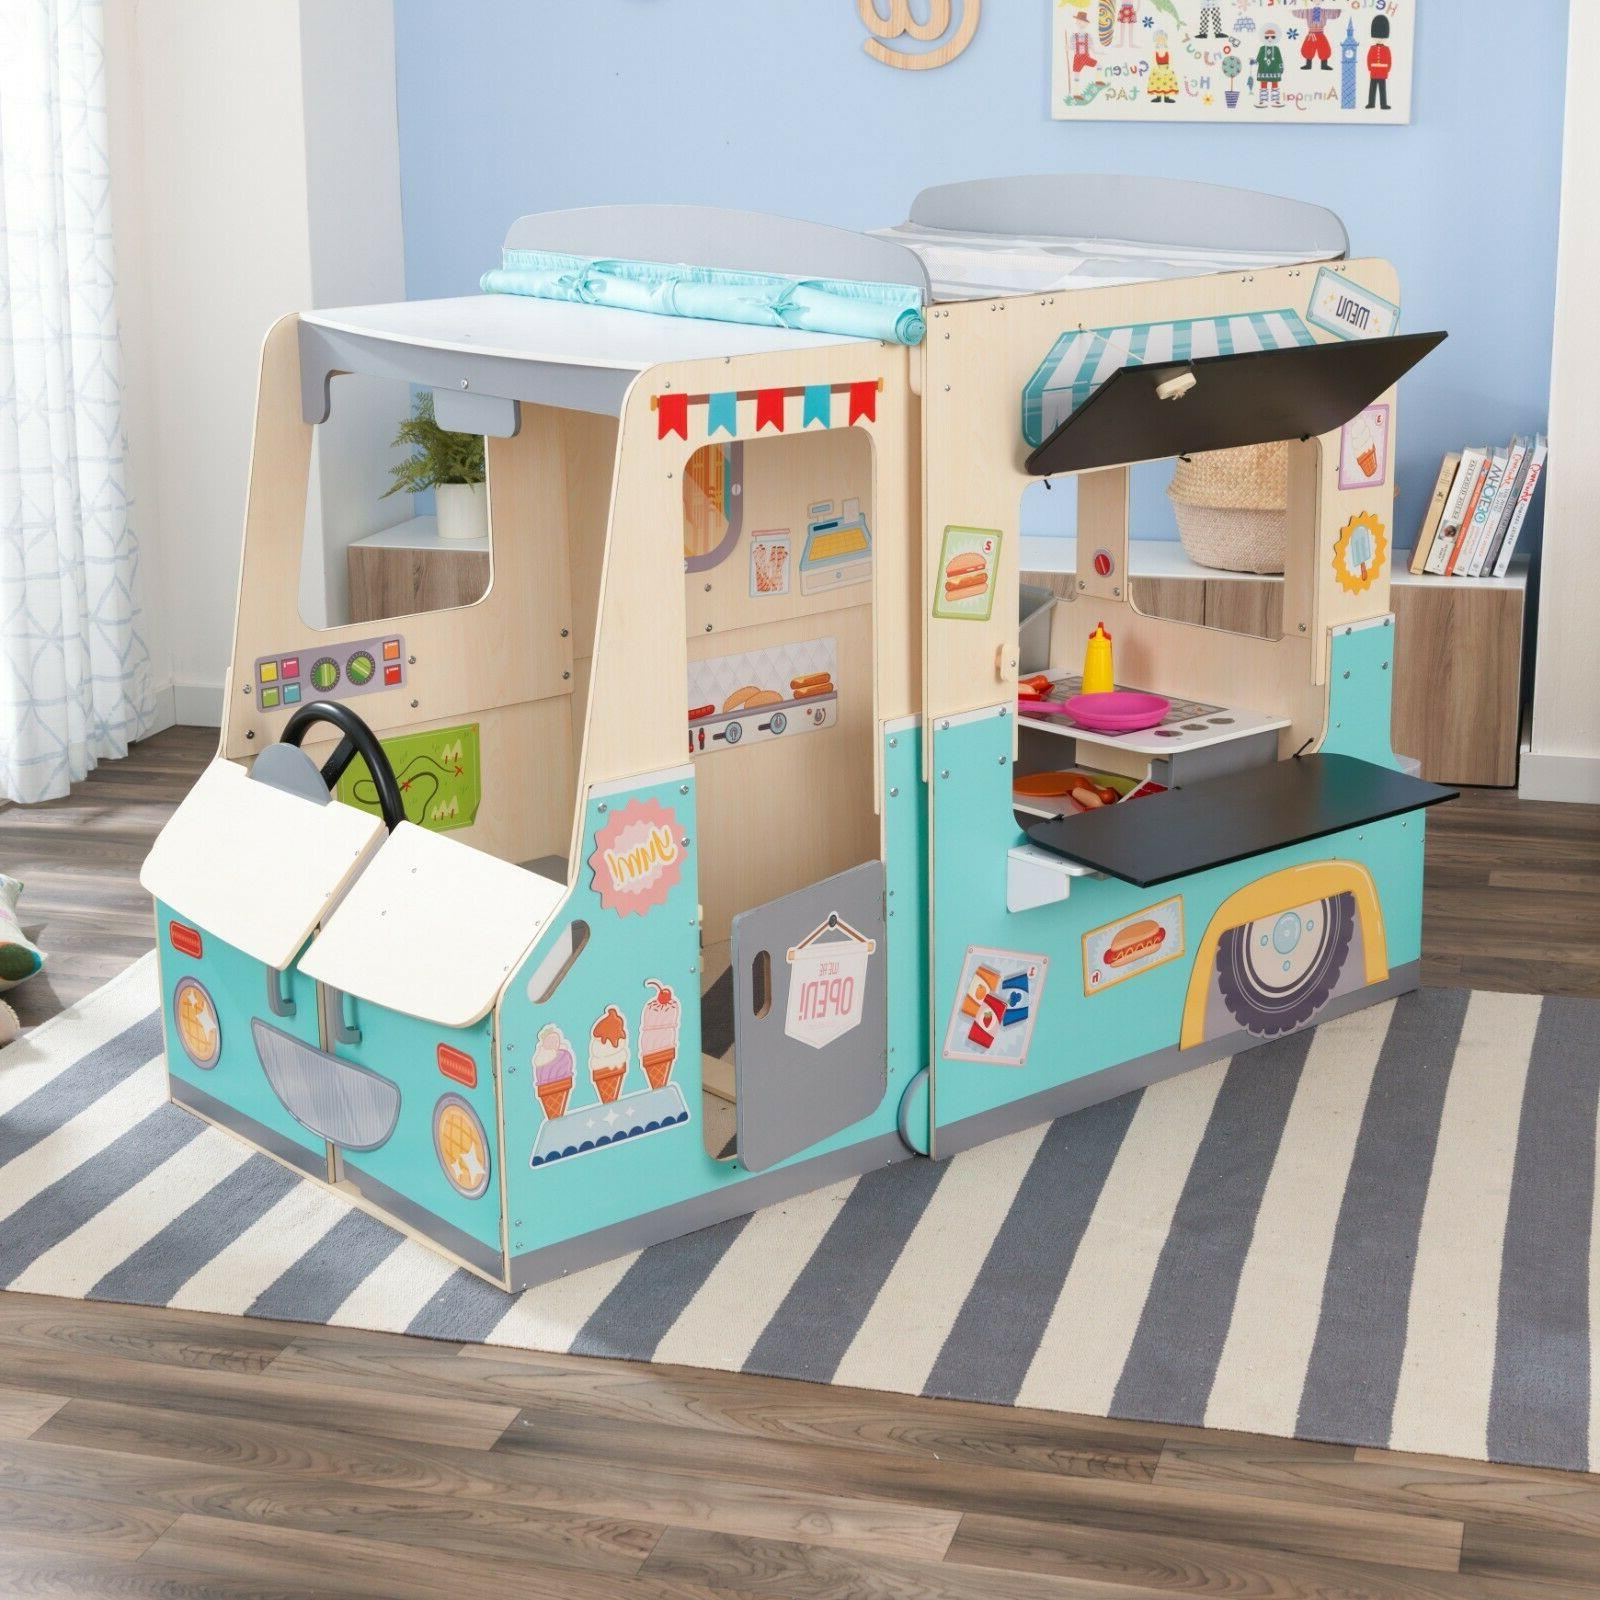 Wondervan Playhouse Art Center, Play Kitchen & Magnets by